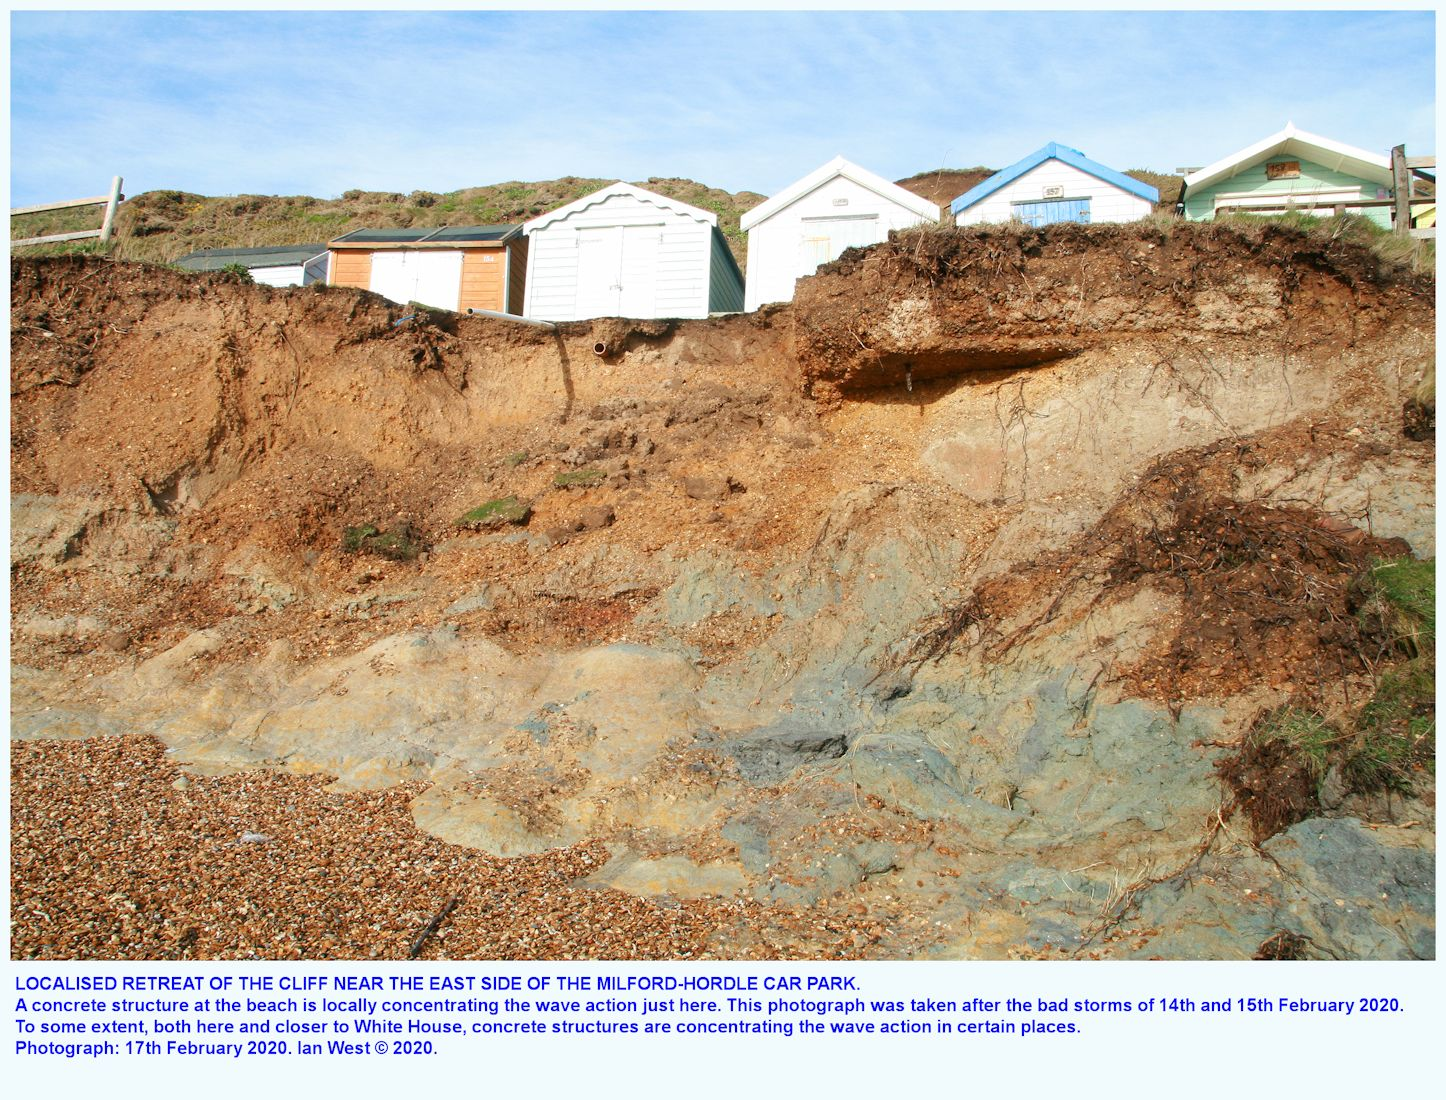 Erosion at the cliff to the southwest of the Hordle-Milford car park, as seen on the 17th January 2020